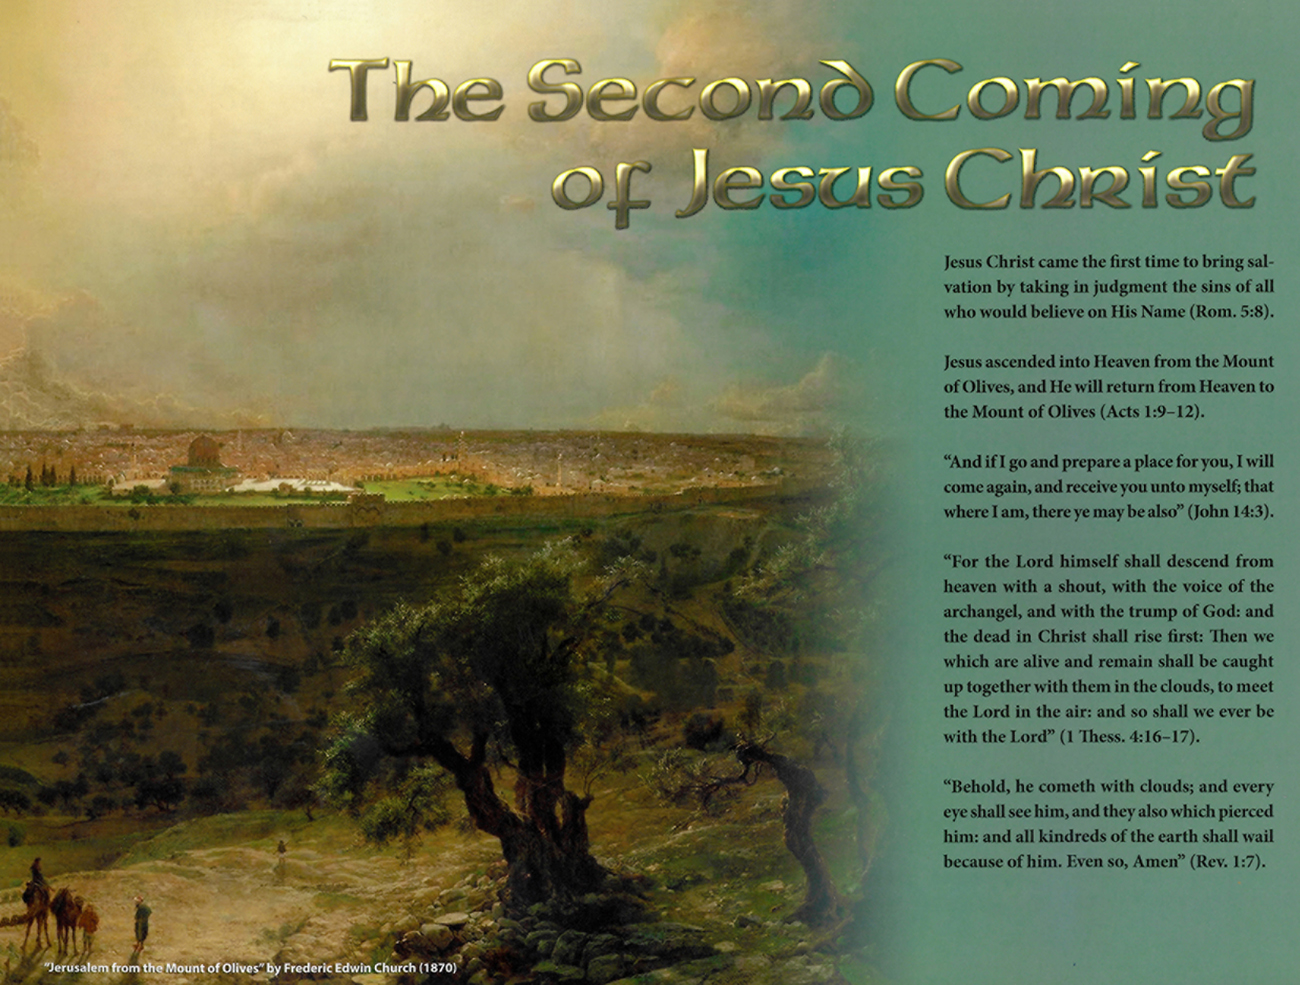 2013 Prophecy Calendar: November - The Second Coming of Jesus Christ